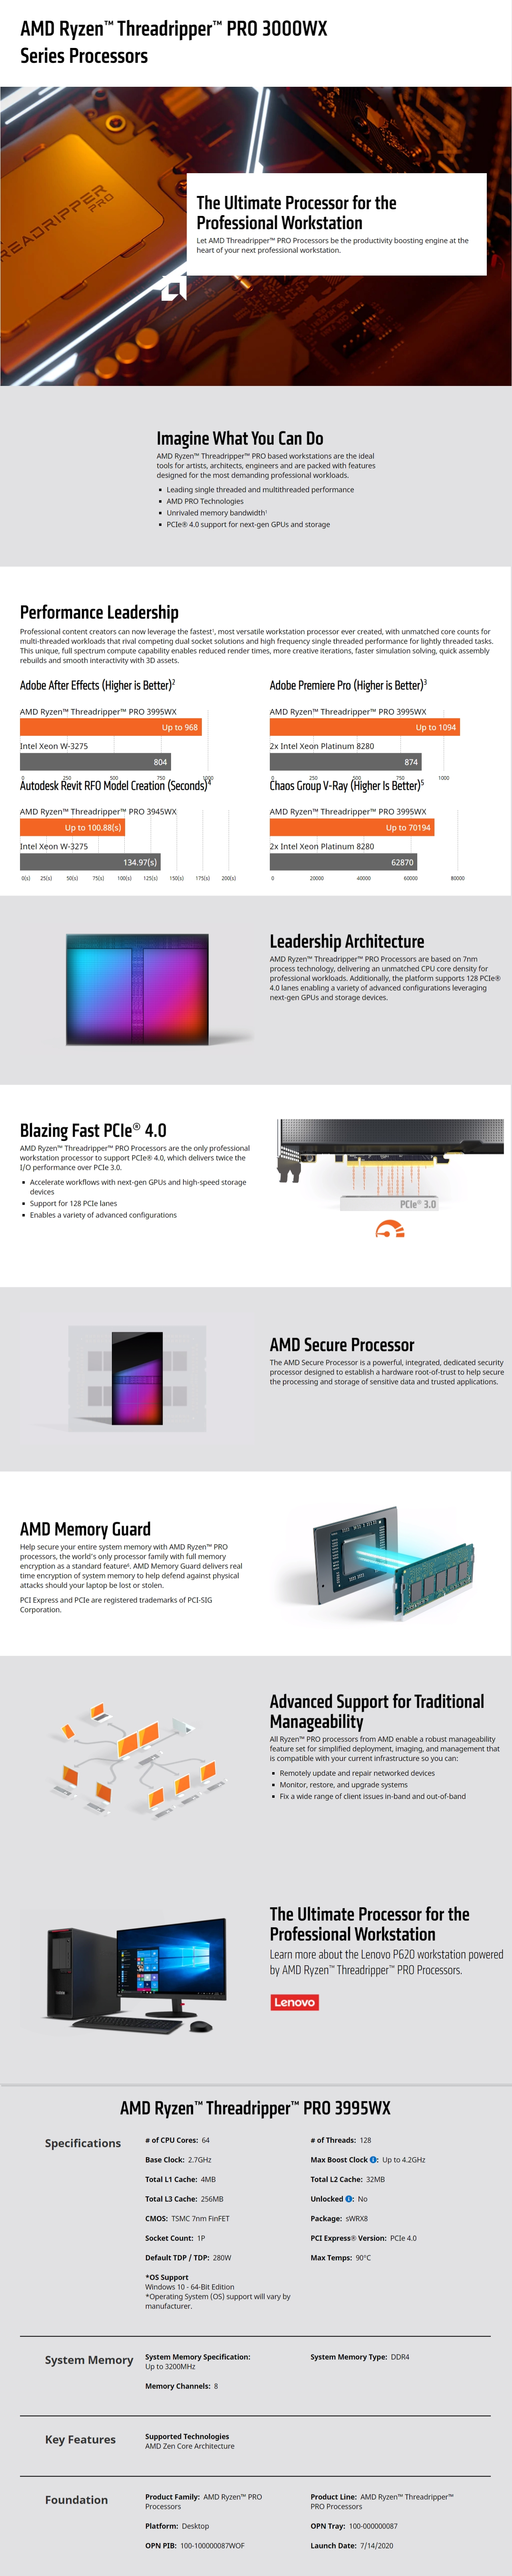 A large marketing image providing additional information about the product AMD Ryzen Threadripper PRO 3995WX 64 Core 128 Thread Up To 4.2Ghz 256MB sWRX8 Processor - No HSF Retail Box - Additional alt info not provided